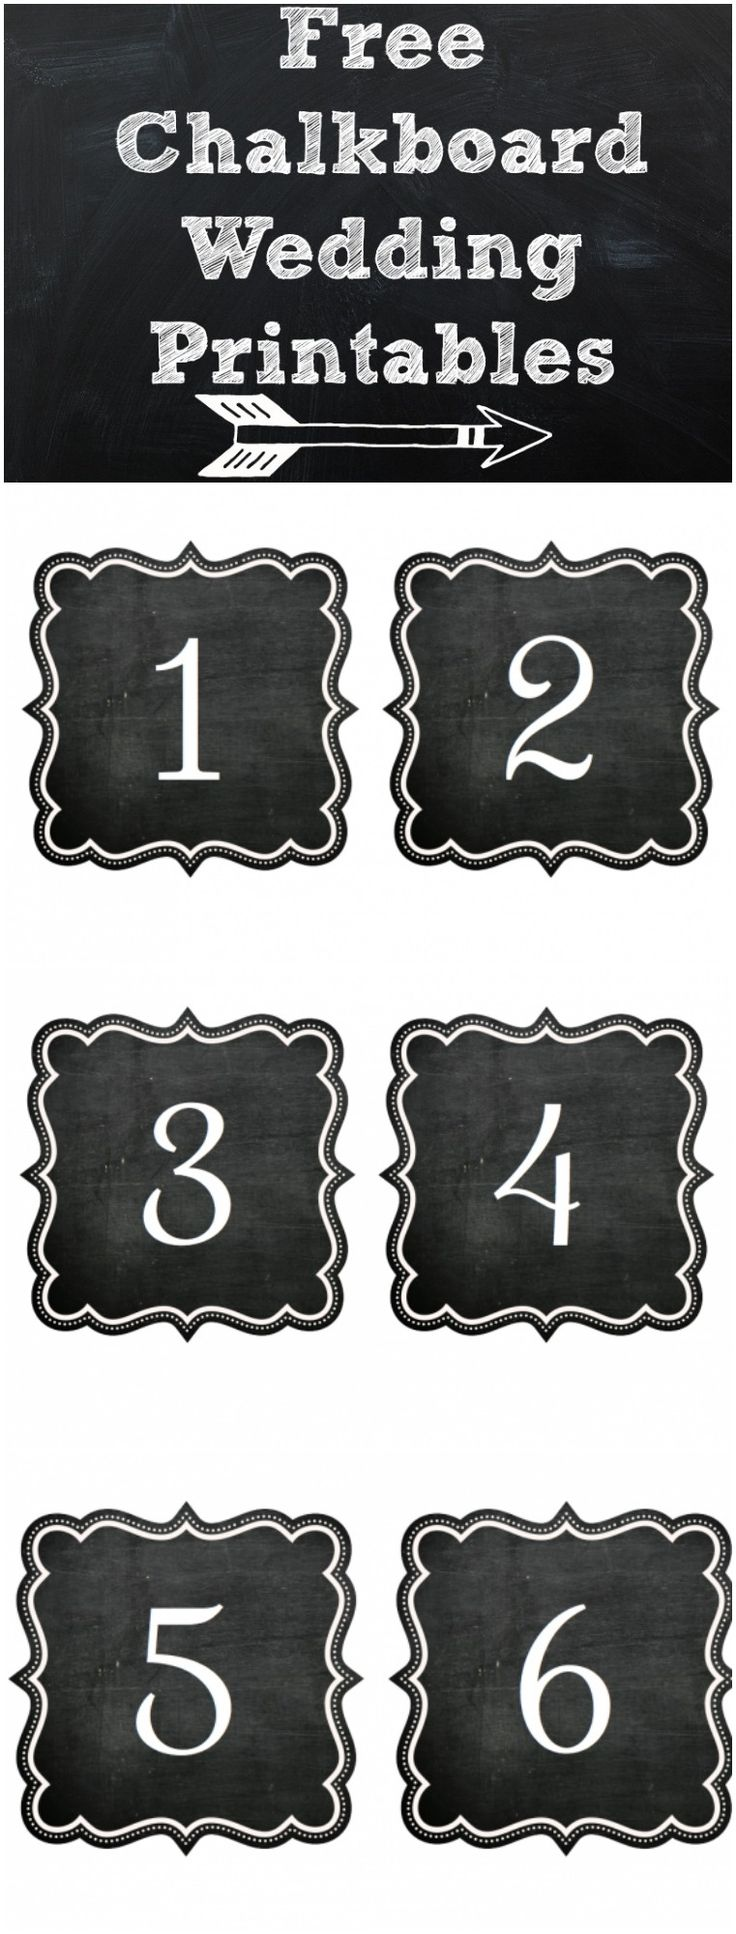 Free Chalkboard Wedding Printables! From rusticweddingchic.com & @Kristin | Paige Simple Studio